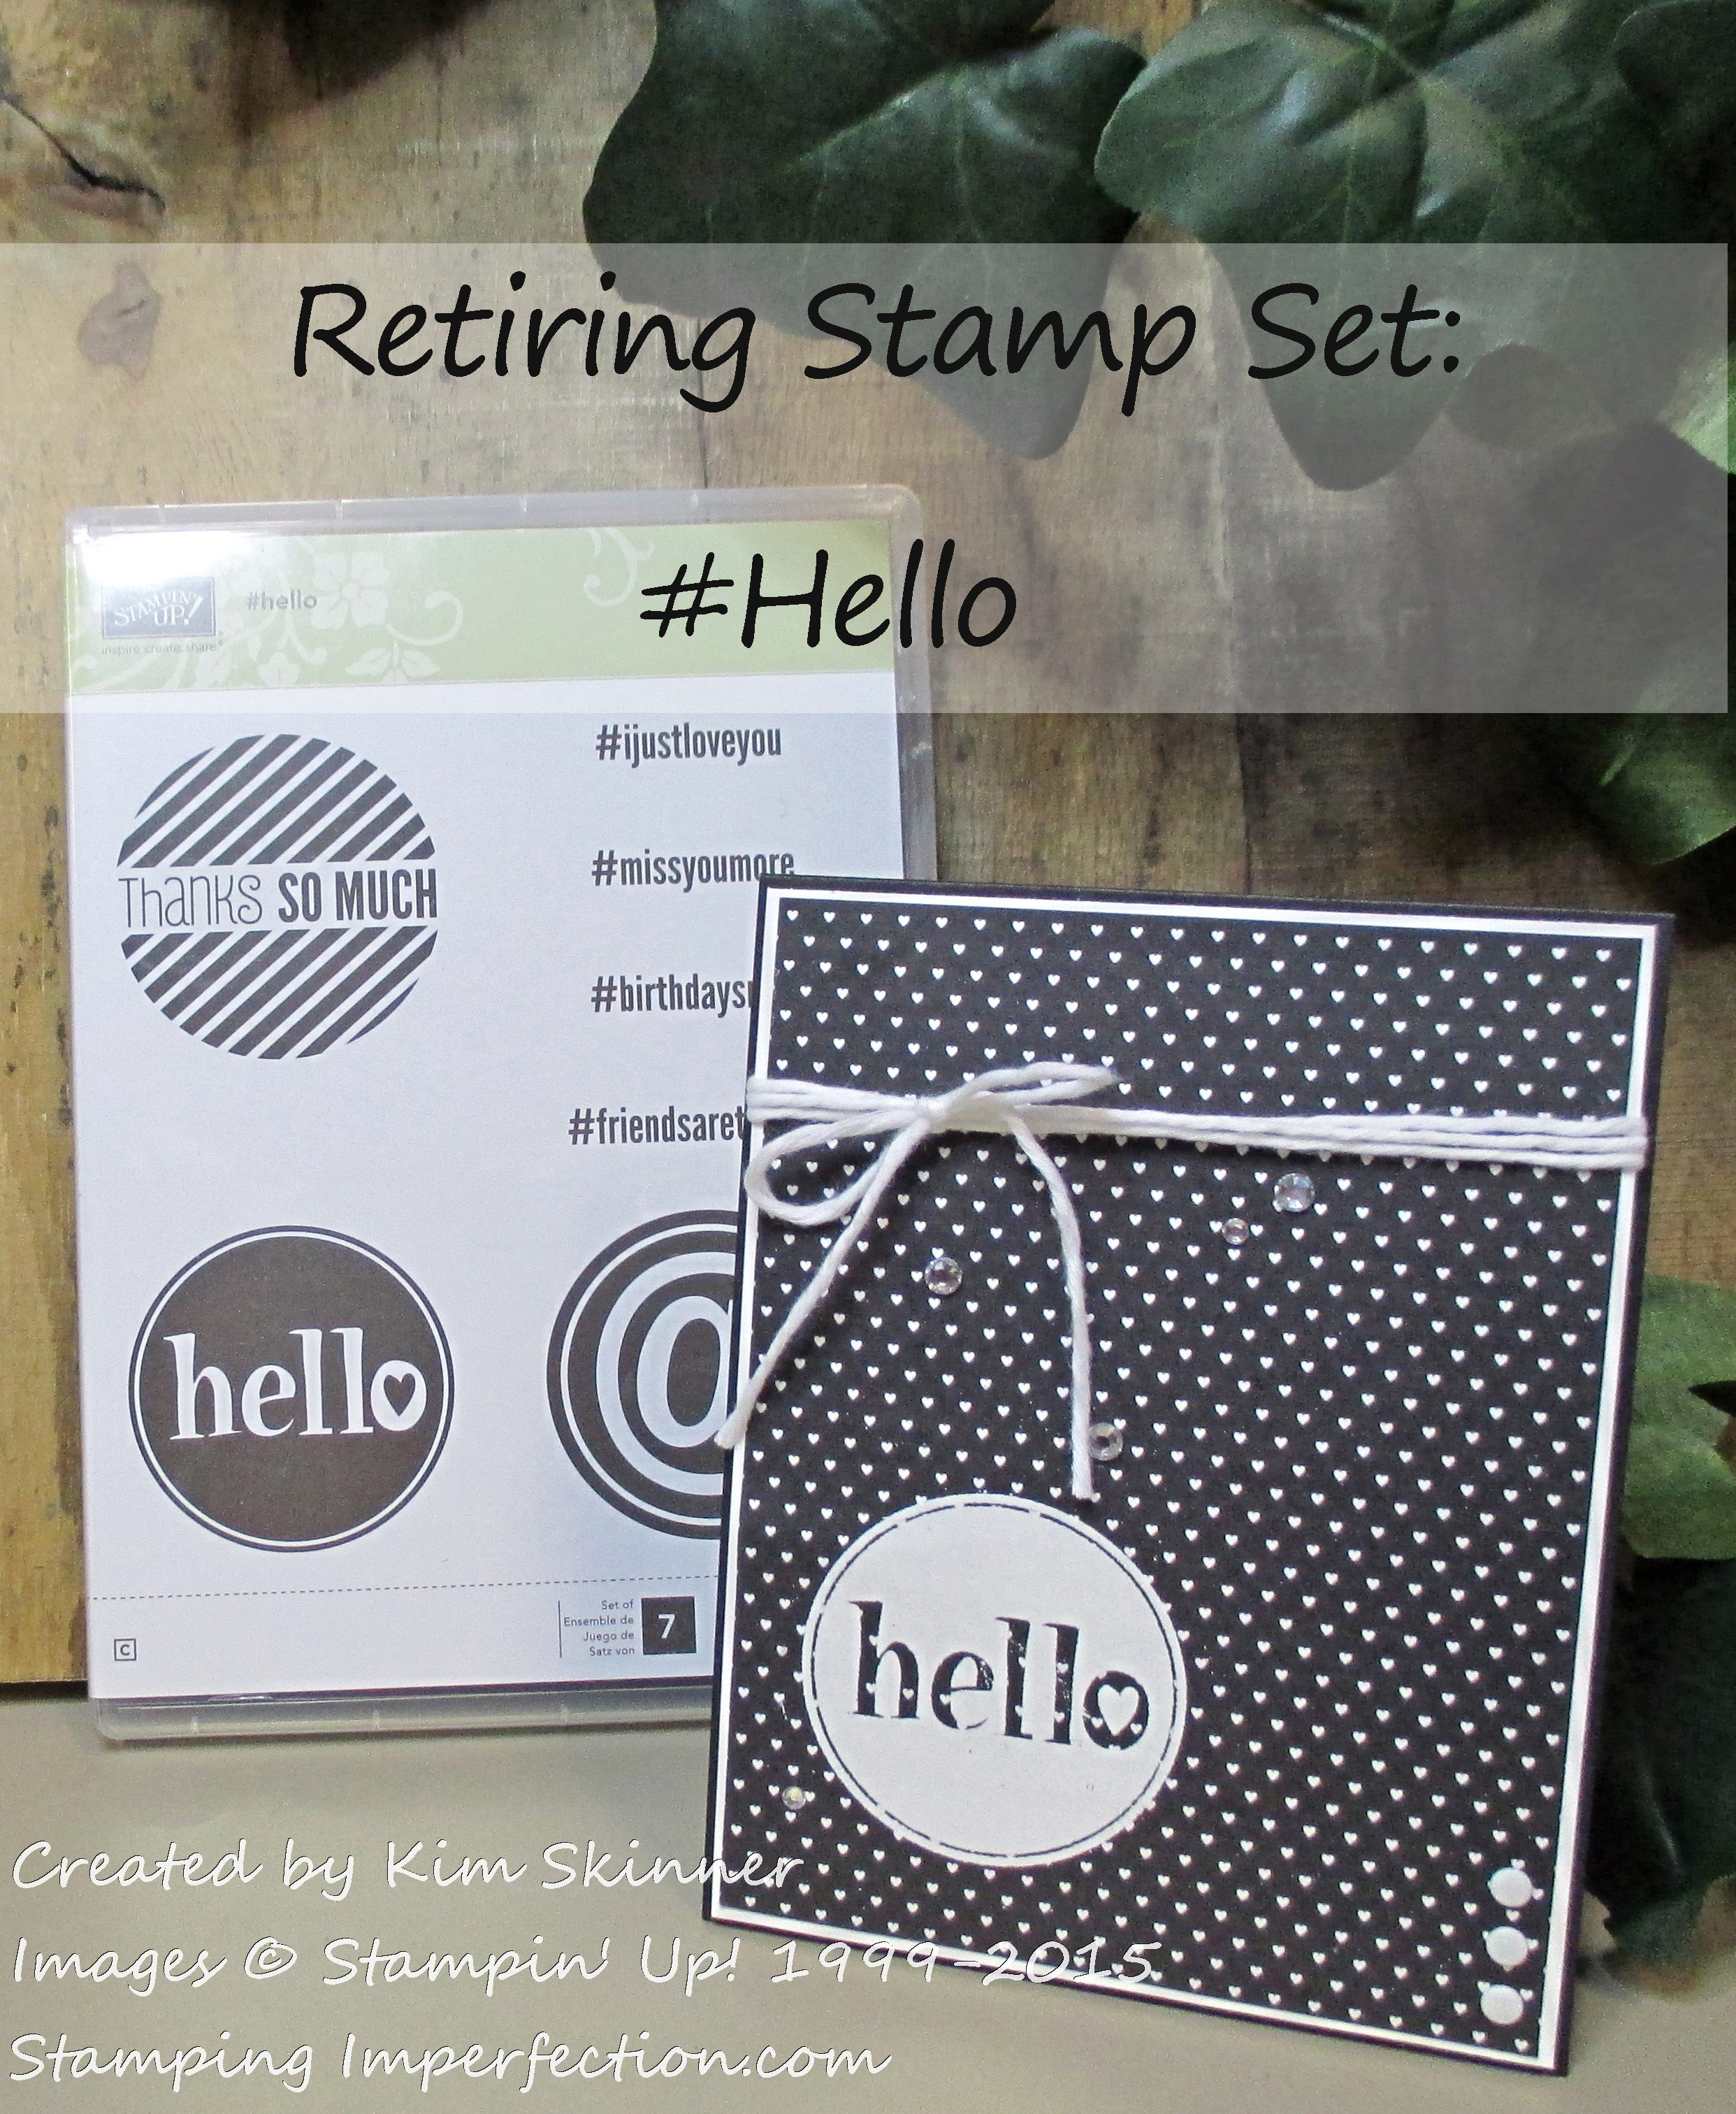 Stamping Imperfection Retiring Stamp Sets # Hello